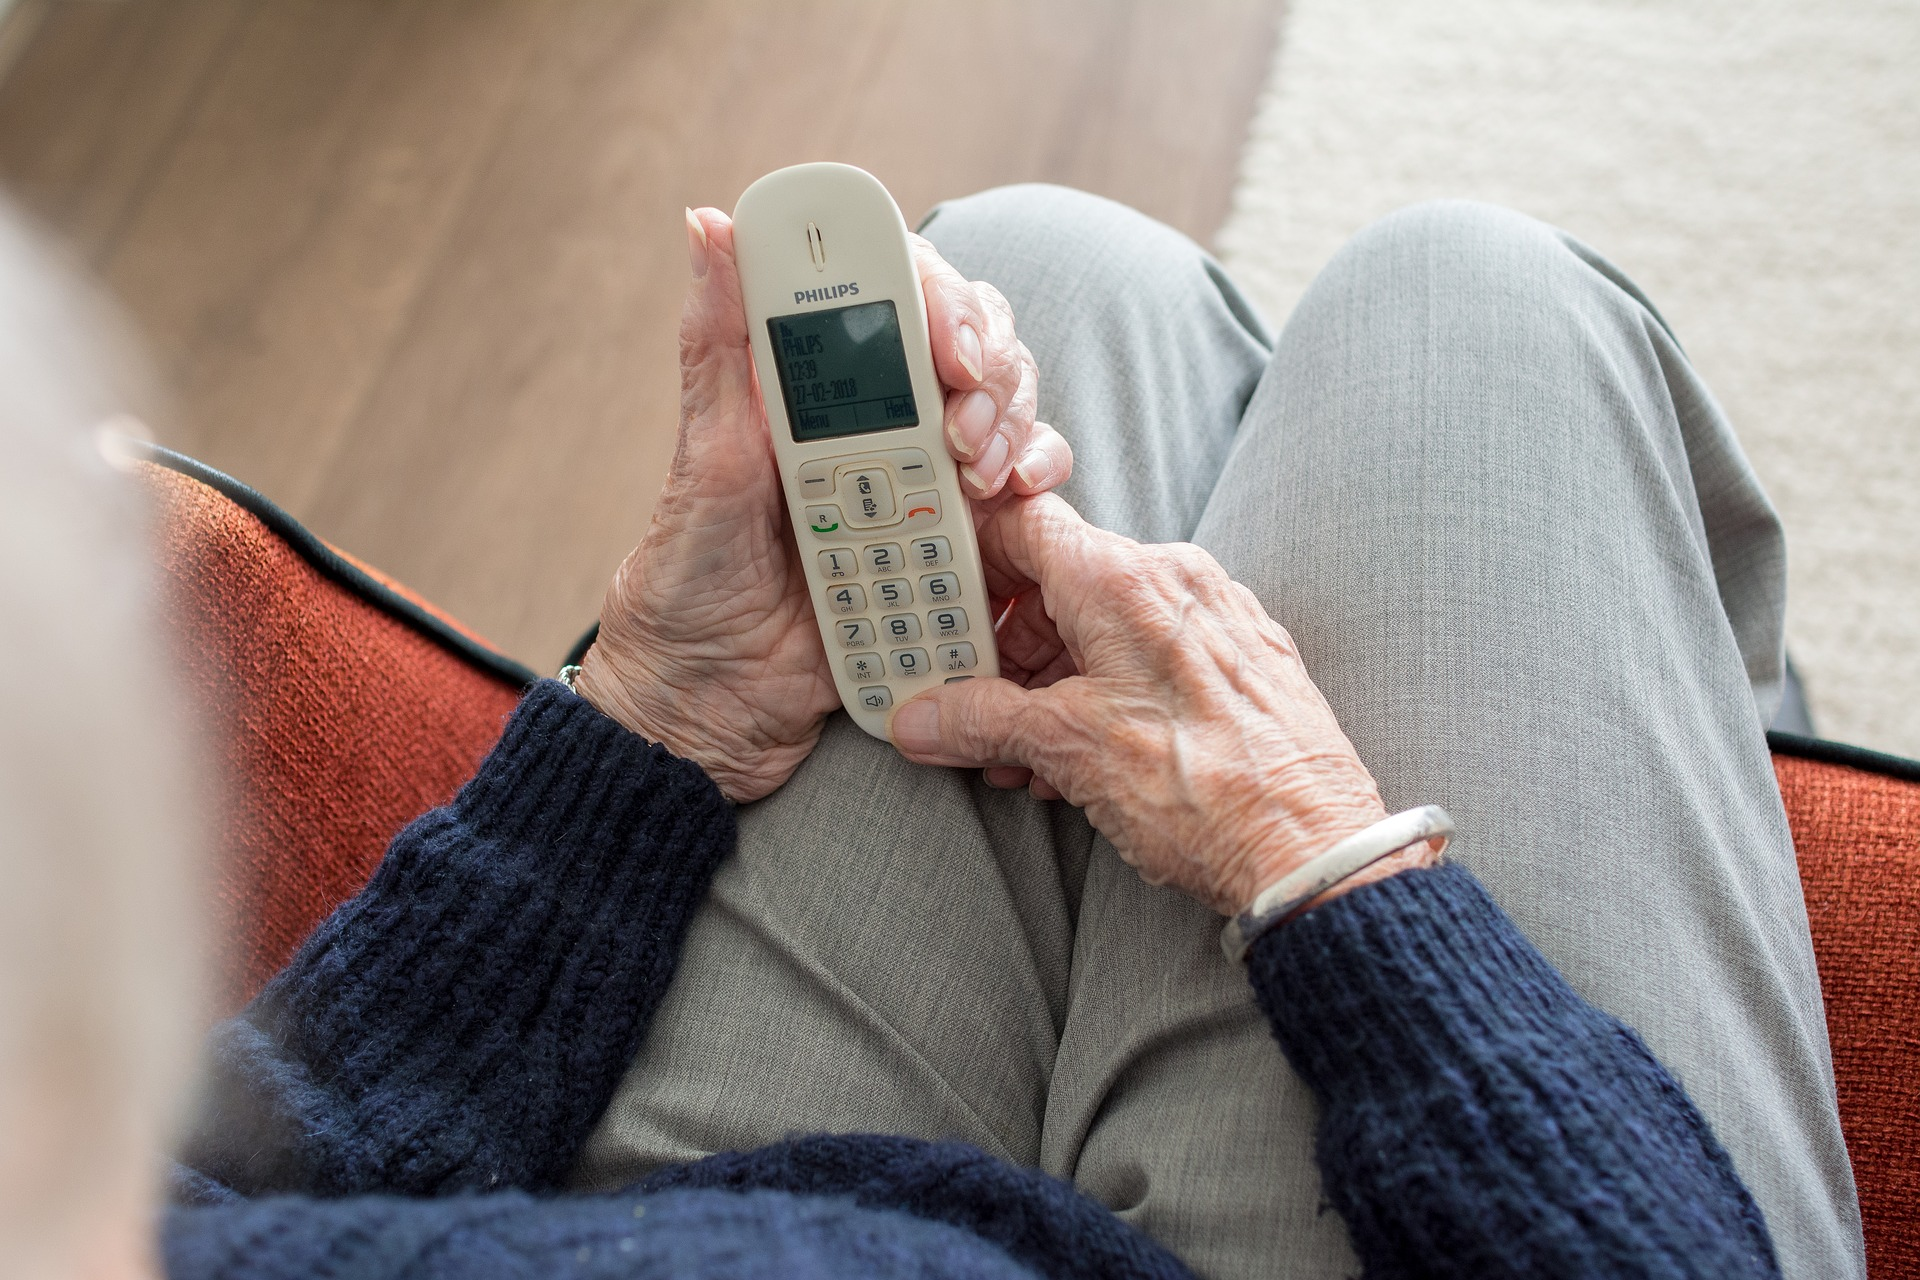 Photograph of older person sitting using home phone.